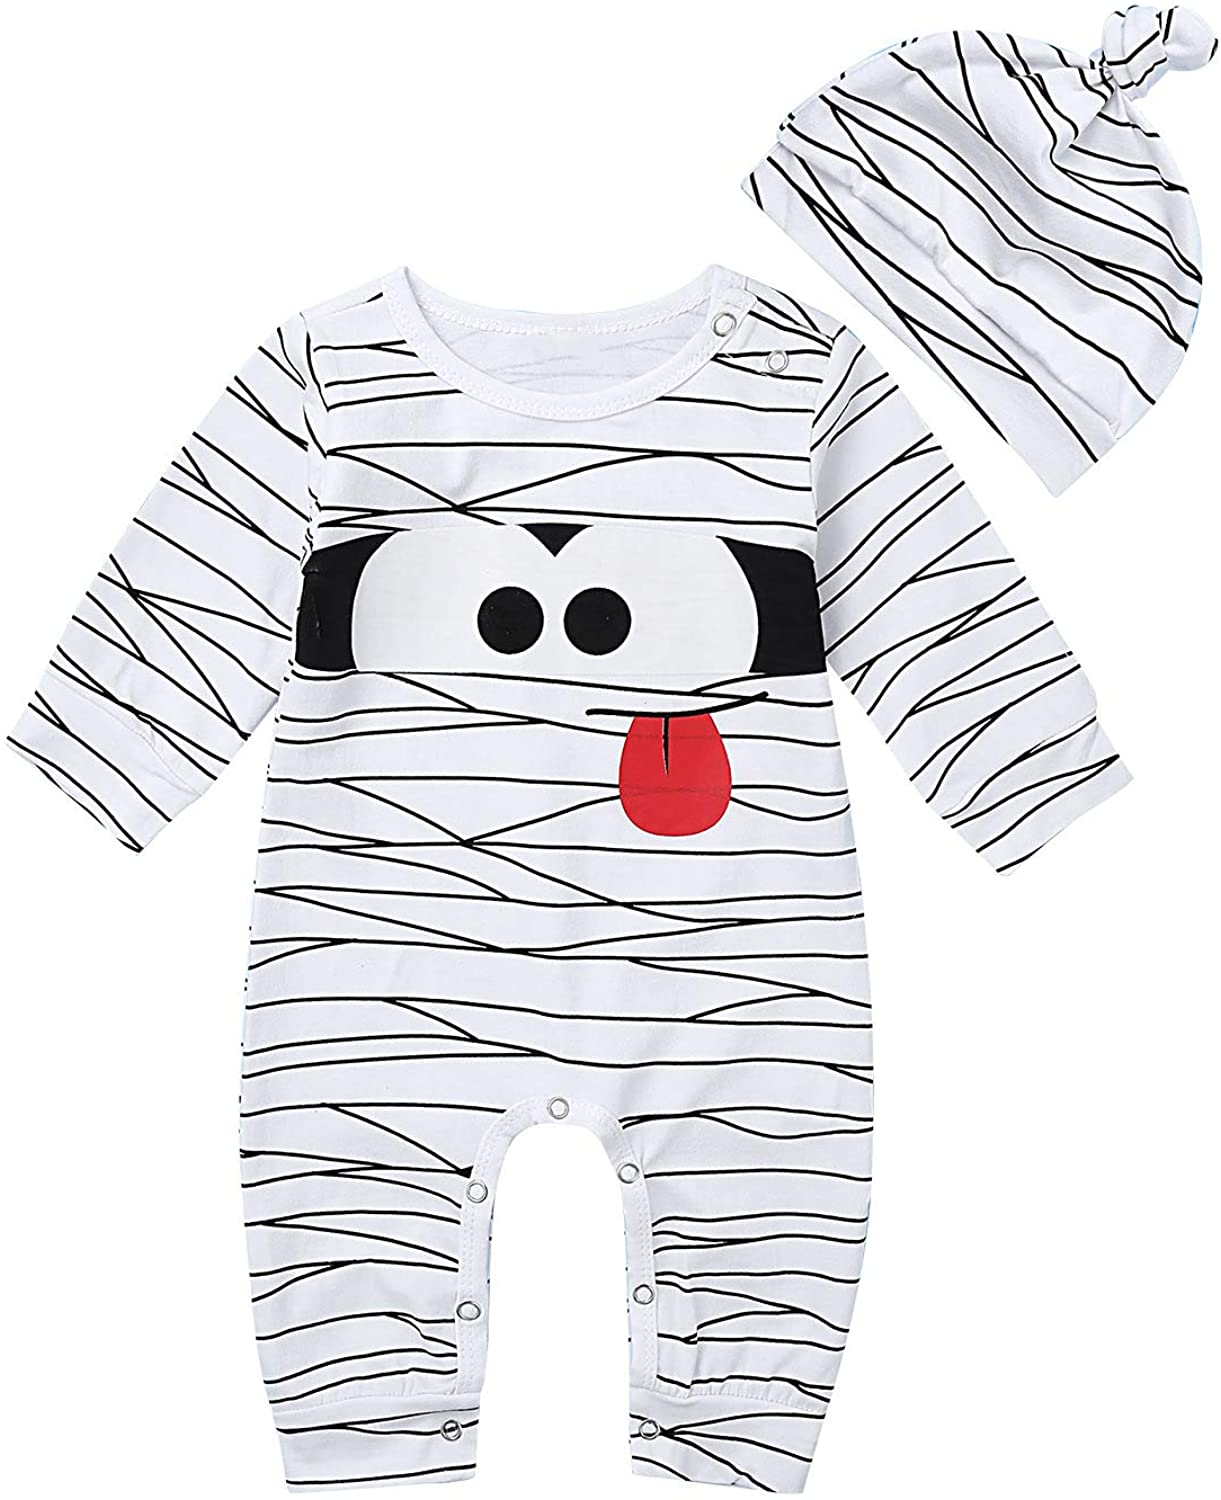 Agoky Infant Baby Girls Boys My 1st Halloween Pumpkin Costumes Romper Outfit Fancy Dress Theme Party Cosplay